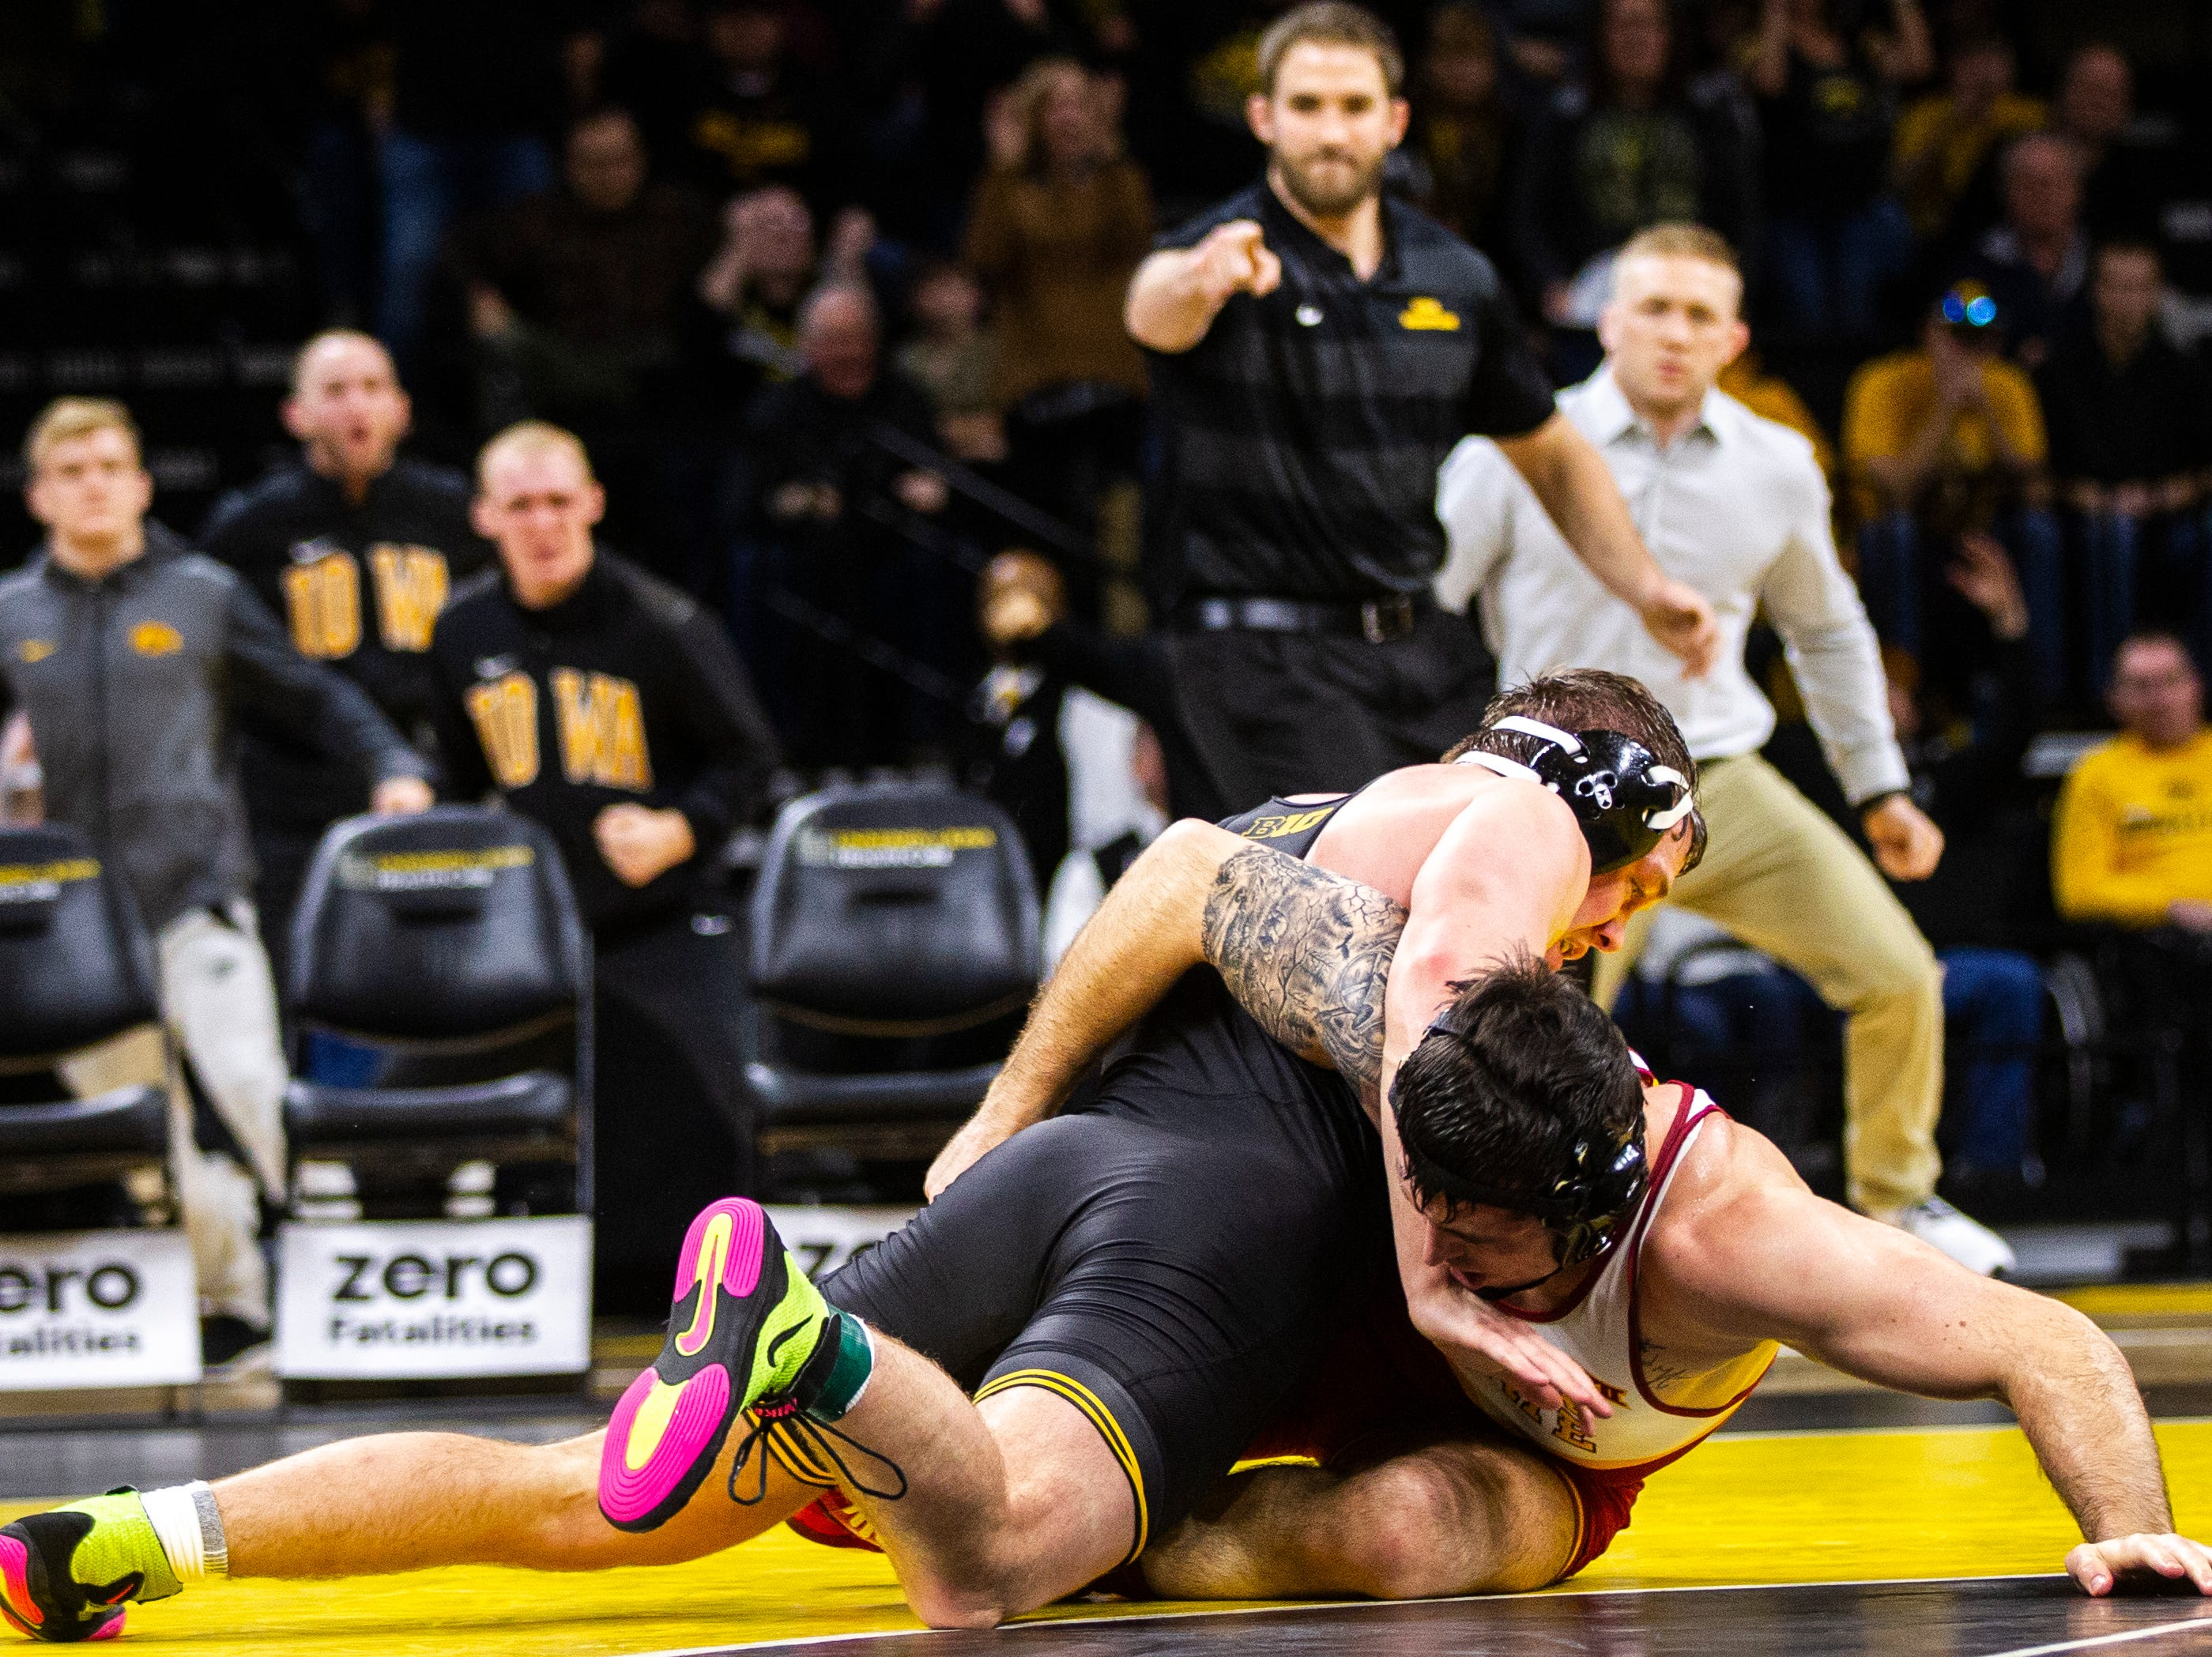 Iowa's Jacob Warner, top, wrestles Iowa State's Willie Miklus at 197 during a NCAA Cy-Hawk series wrestling dual on Saturday, Dec. 1, 2018, at Carver-Hawkeye Arena in Iowa City.